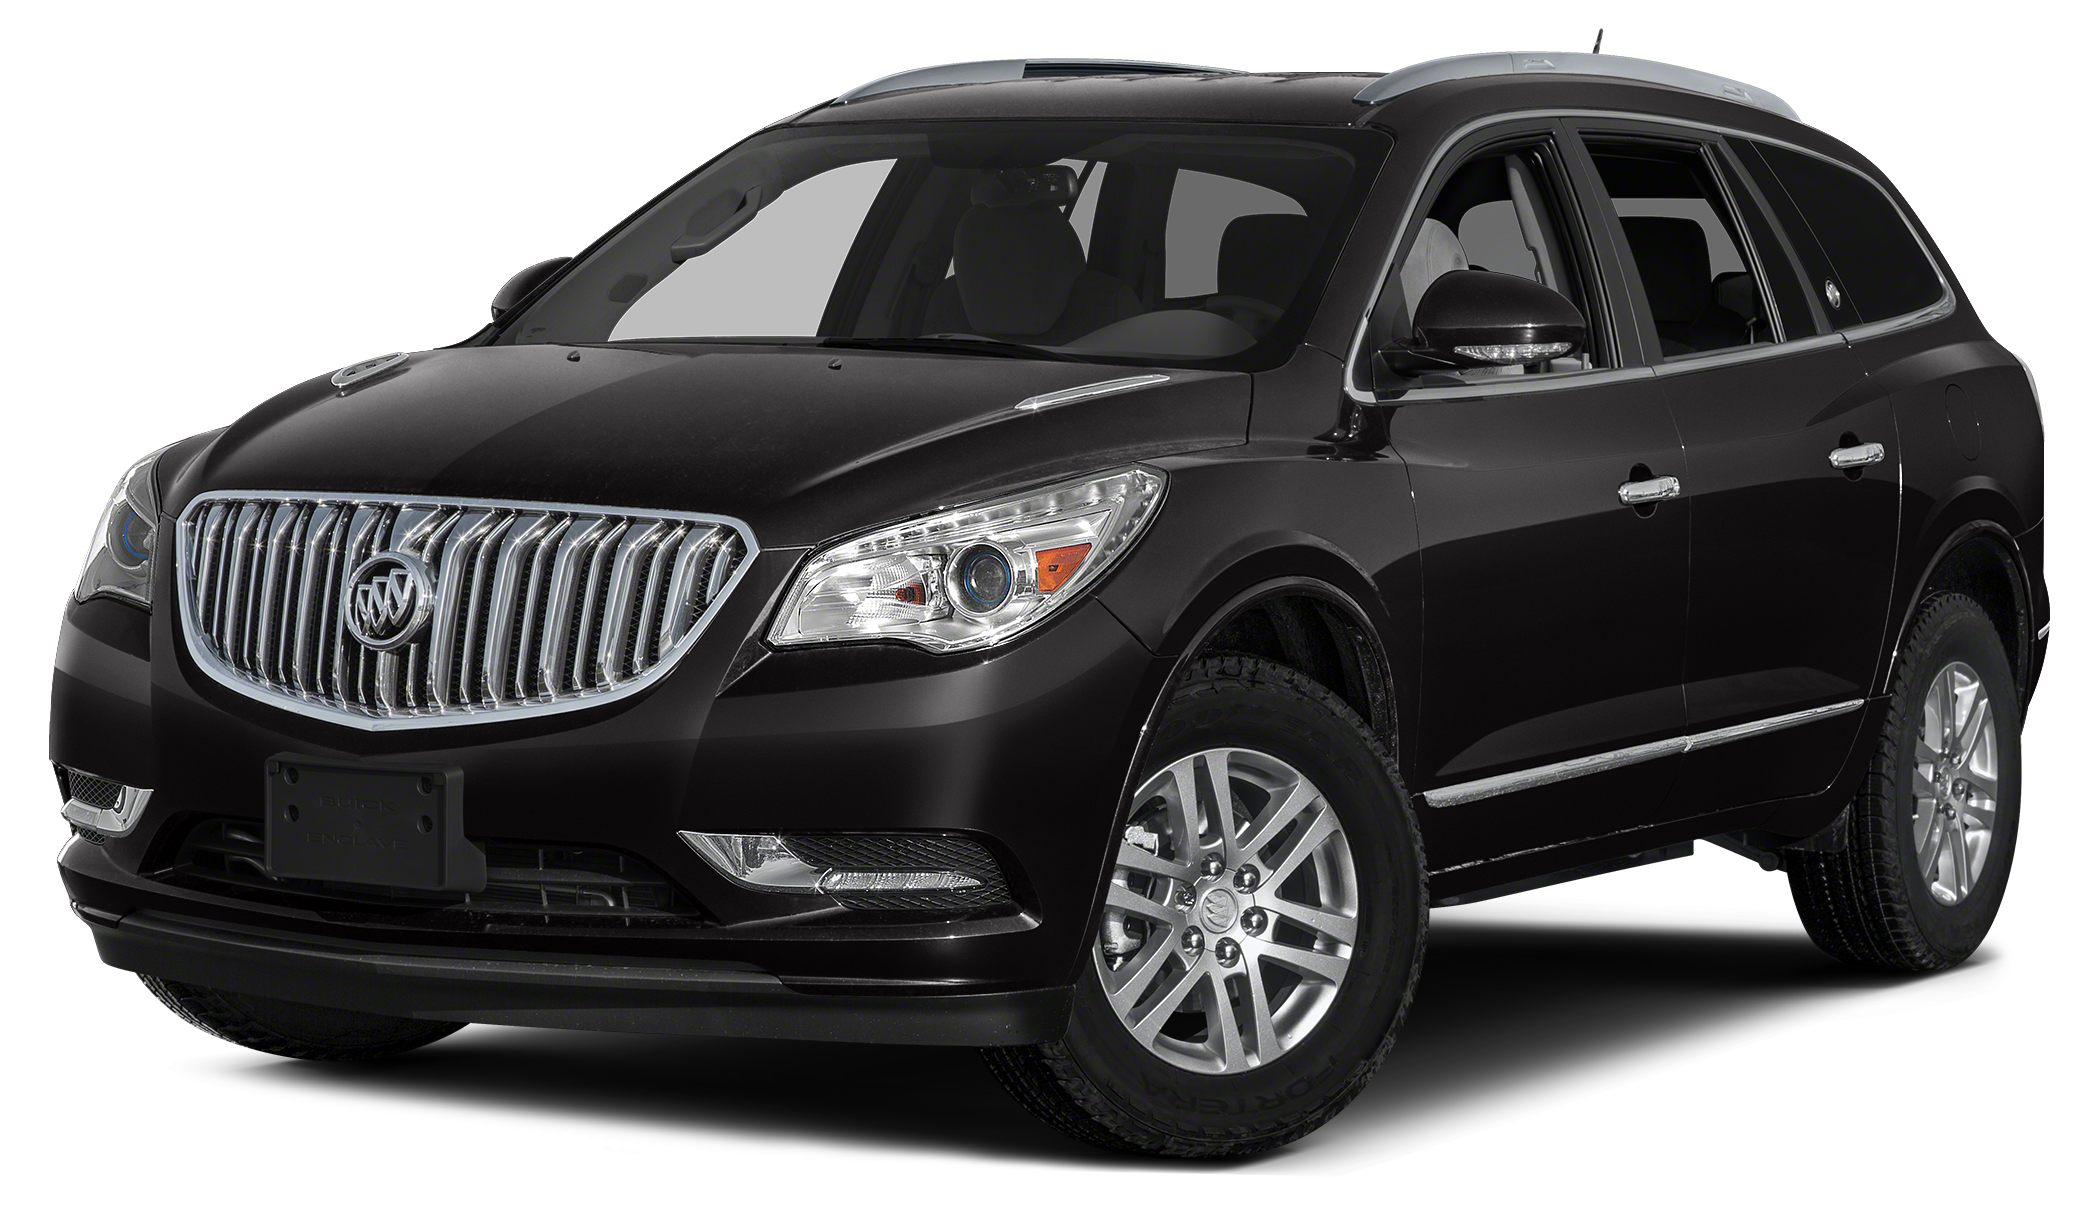 2014 Buick Enclave Premium Let your 2014 Buick Enclave Premium be an oasis from the outdoors with